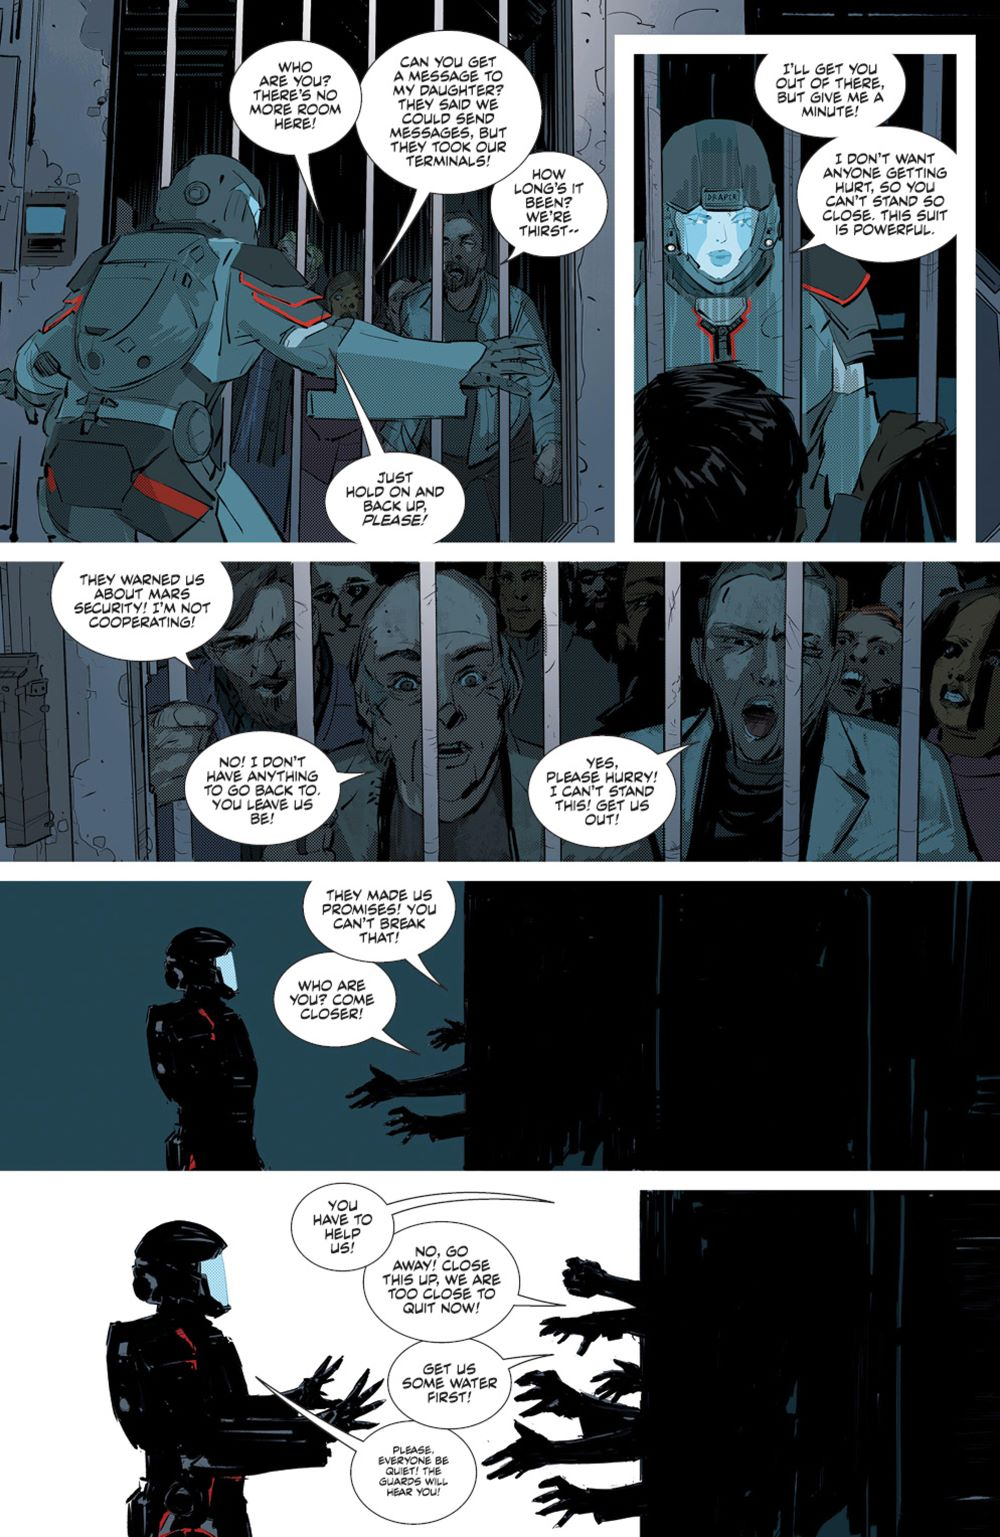 Expanse_004_PRESS_8 ComicList Previews: THE EXPANSE #4 (OF 4)